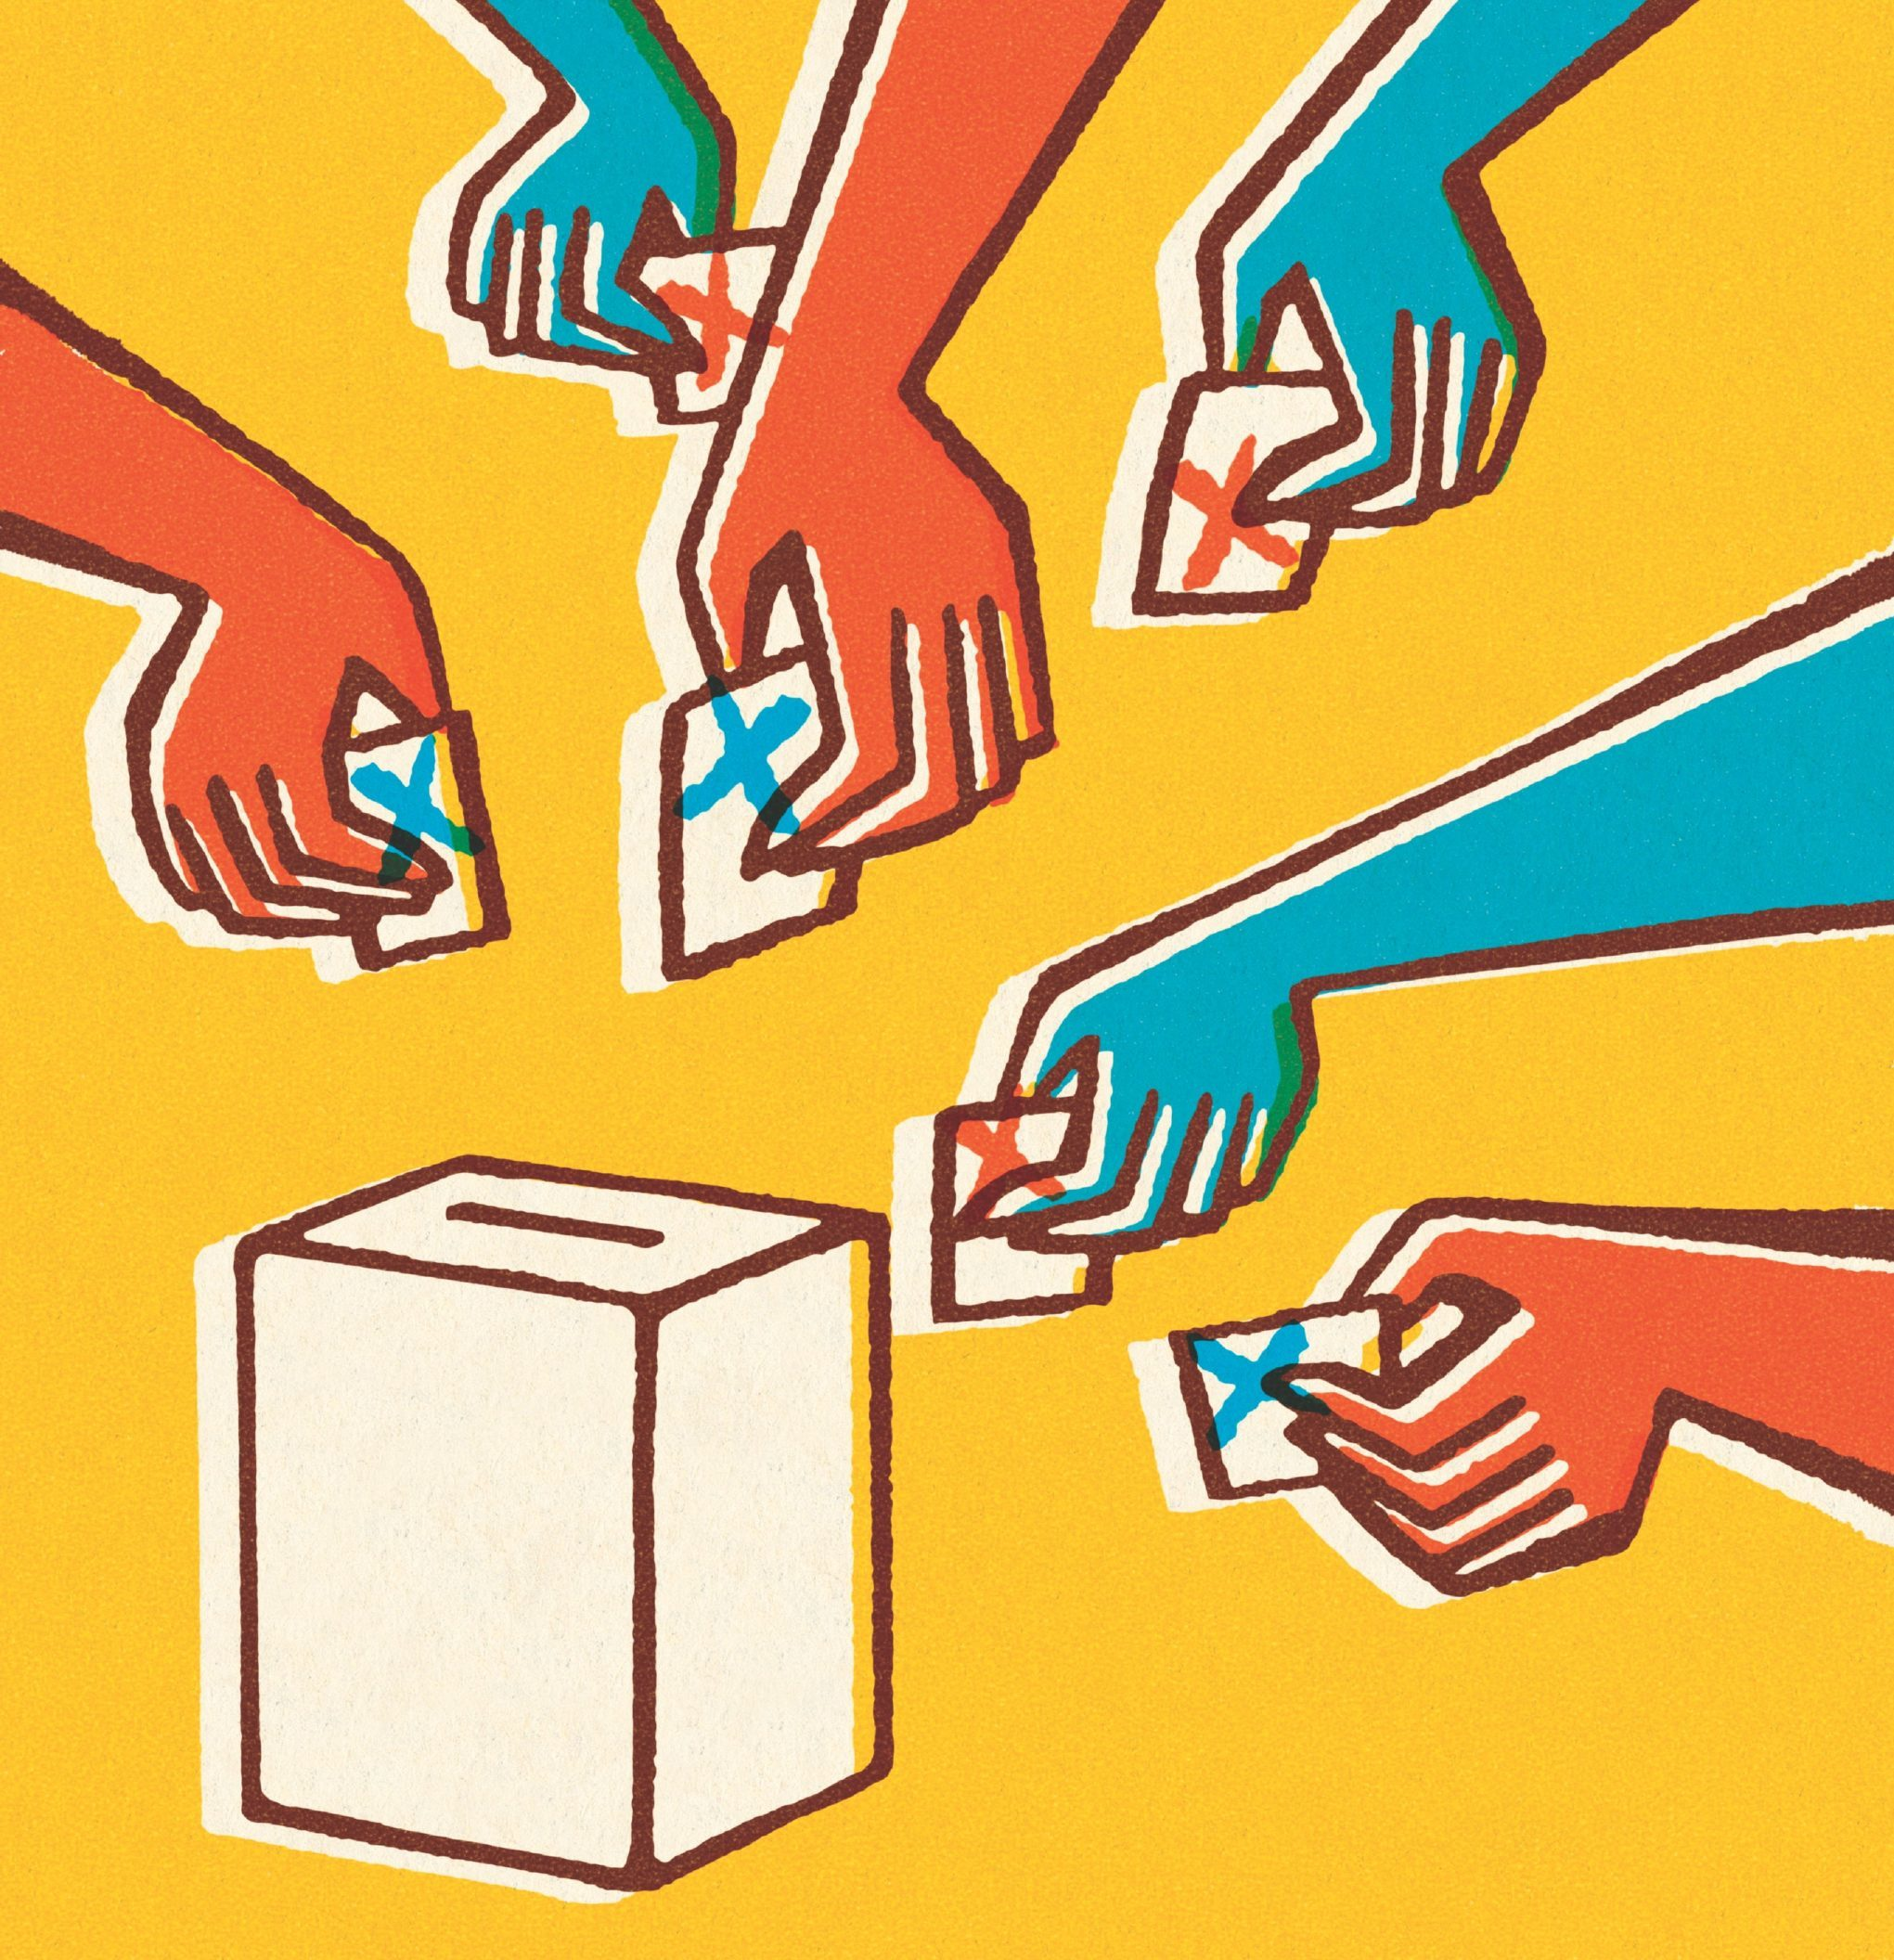 Voting hands helped by Alcuin senior